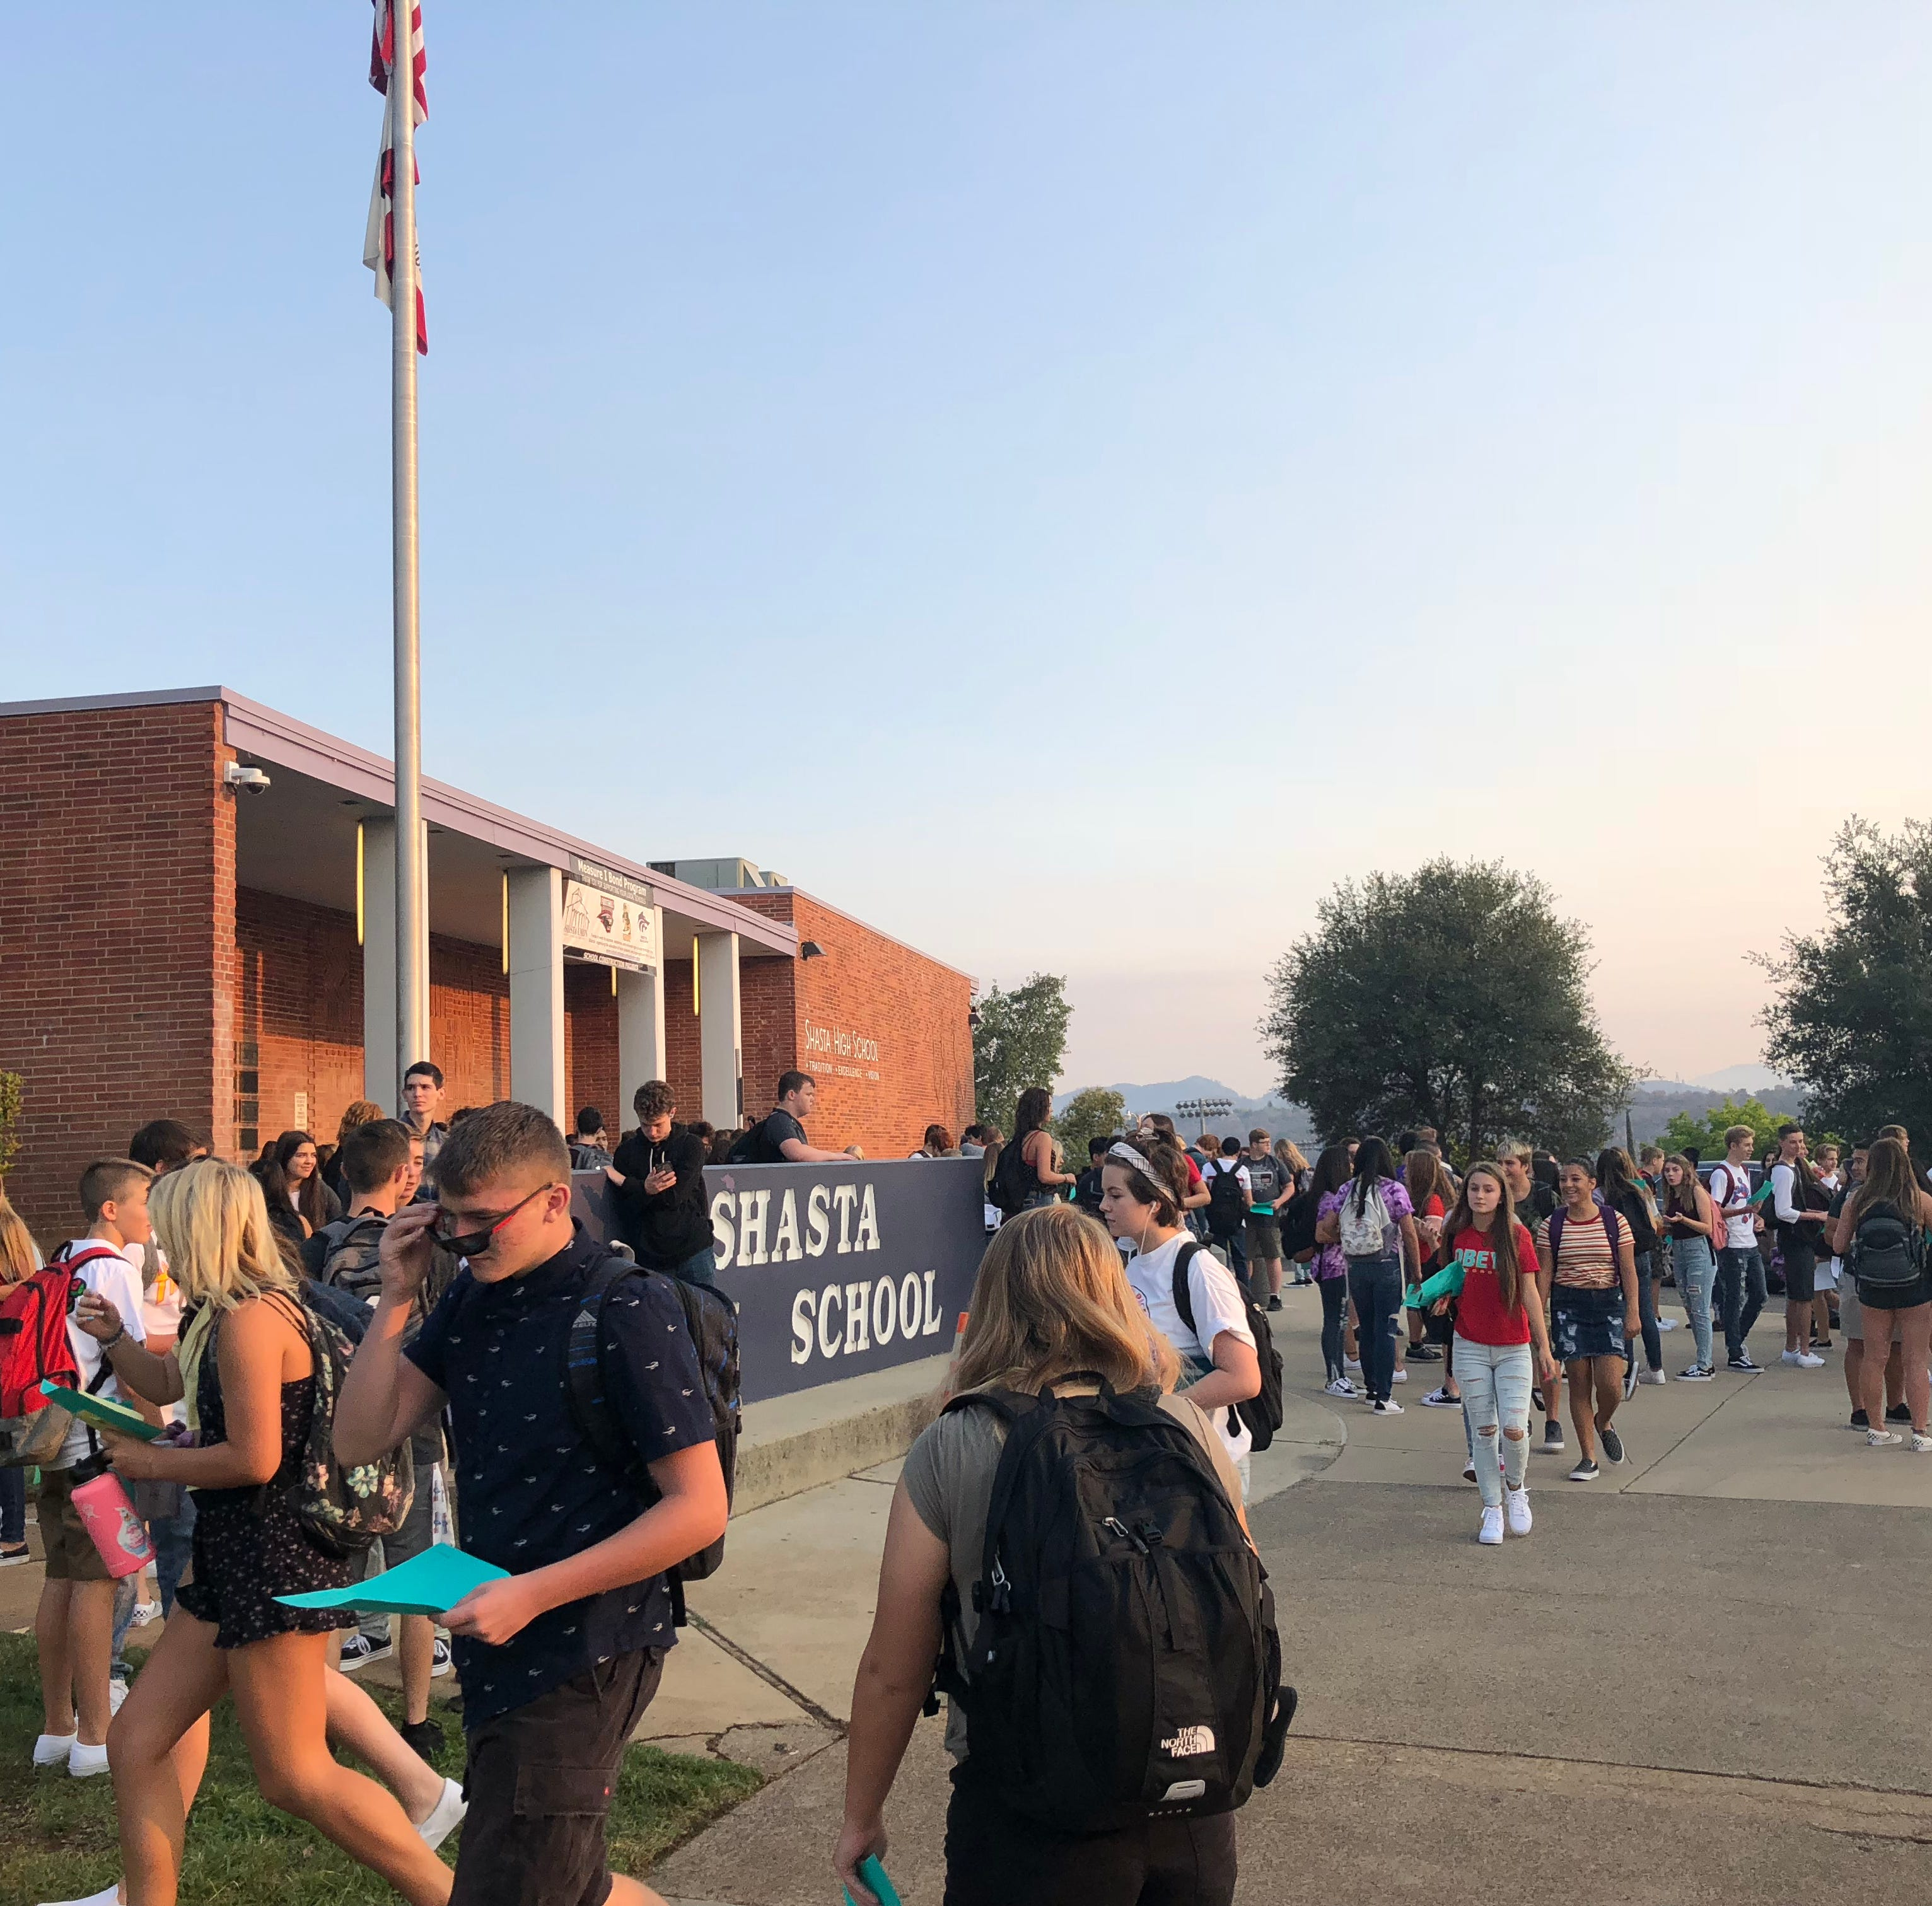 Schools in Redding open with the Carr Fire on the minds of some students